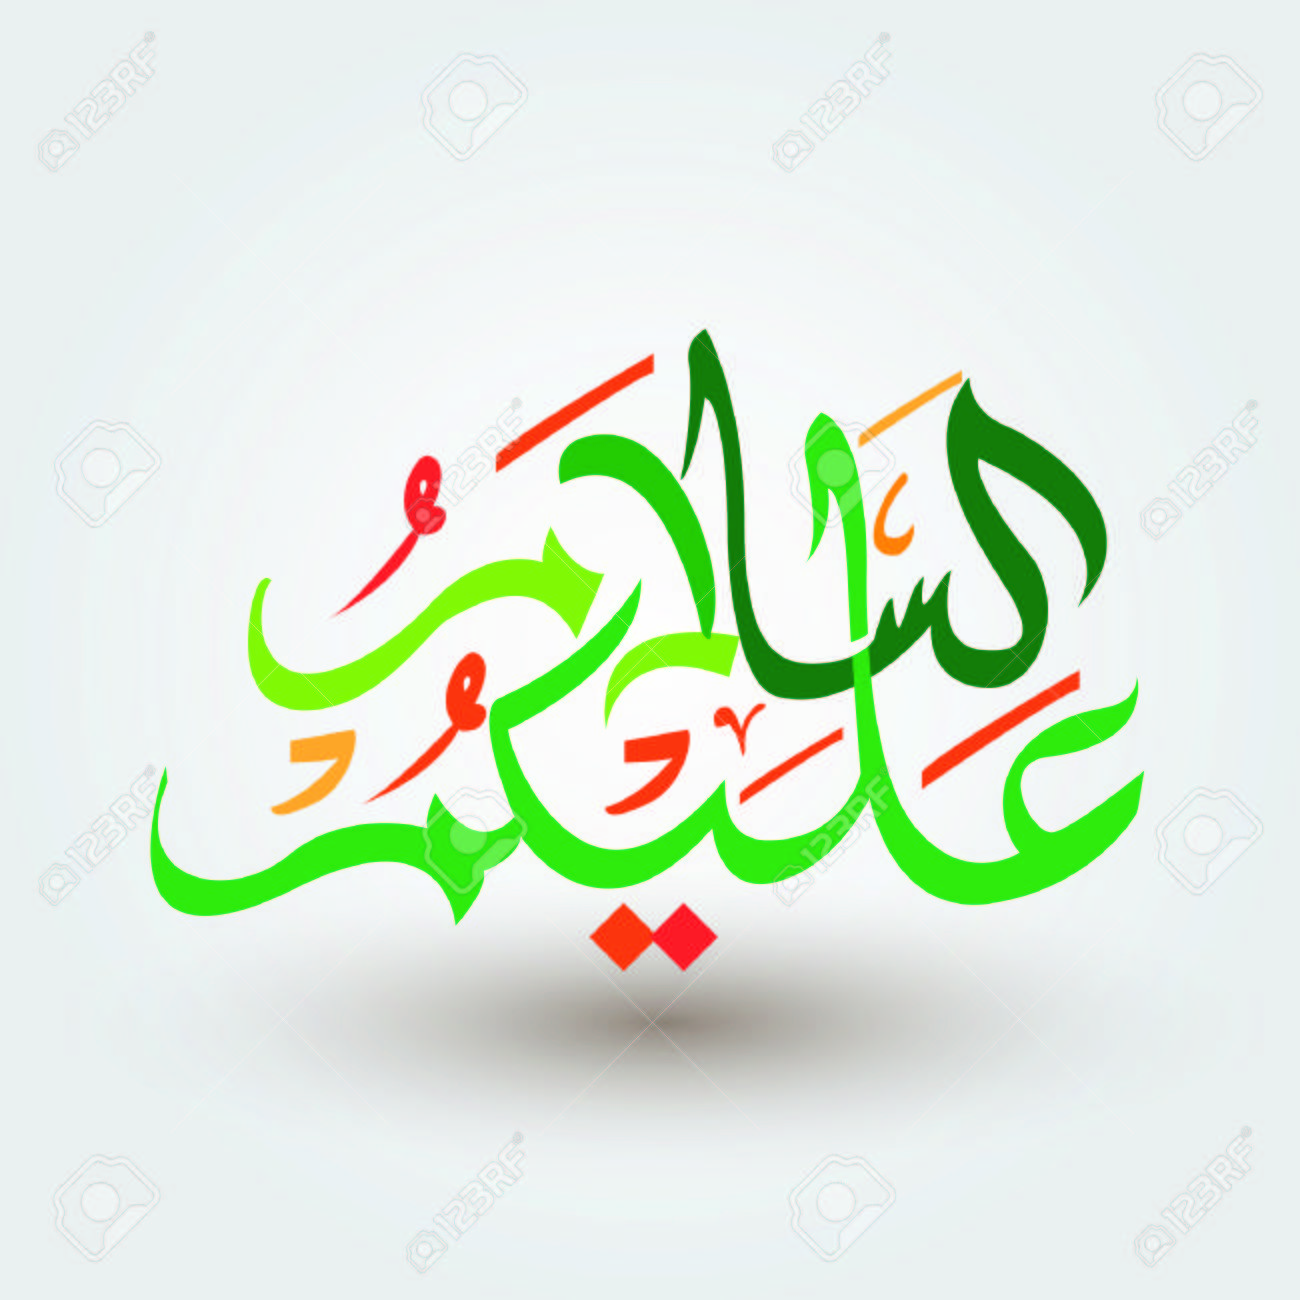 Arabic Calligraphy Meaning Peace Be Upon You Royalty Free Cliparts Vectors And Stock Illustration Image 69024031